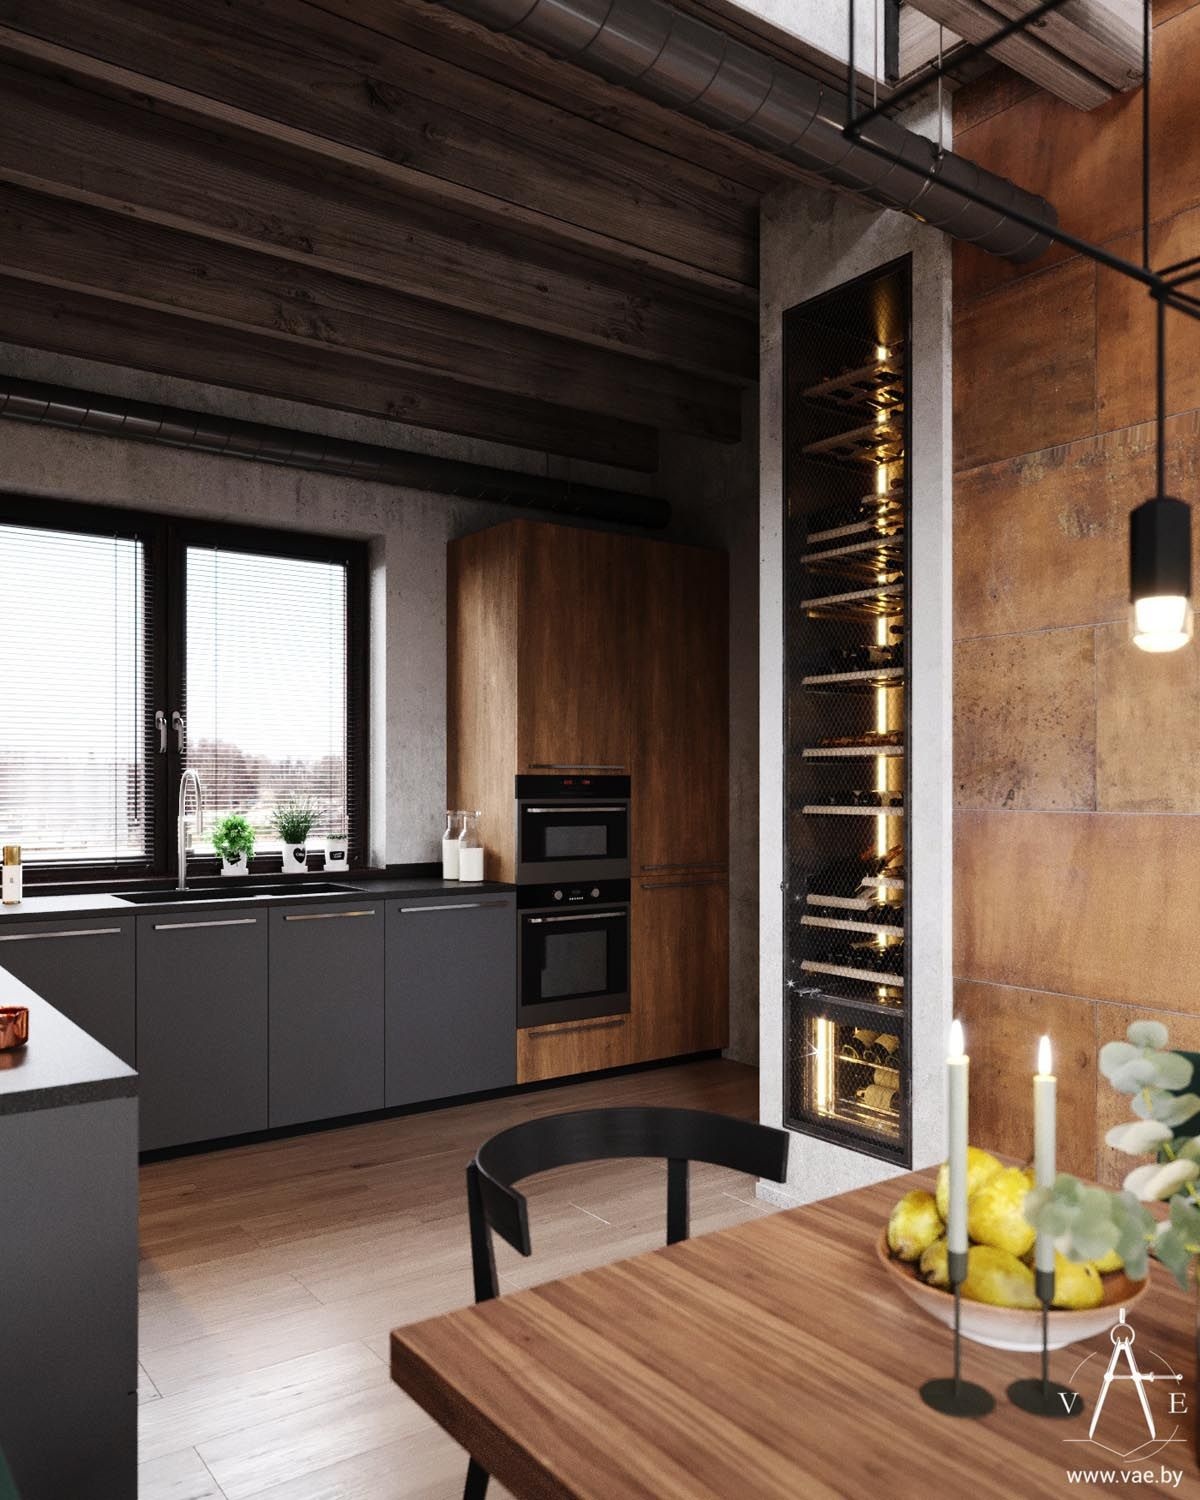 Good This City House In Minsk, Belarus, Is 151m2 Of Modern Loft Style. Designed Great Ideas